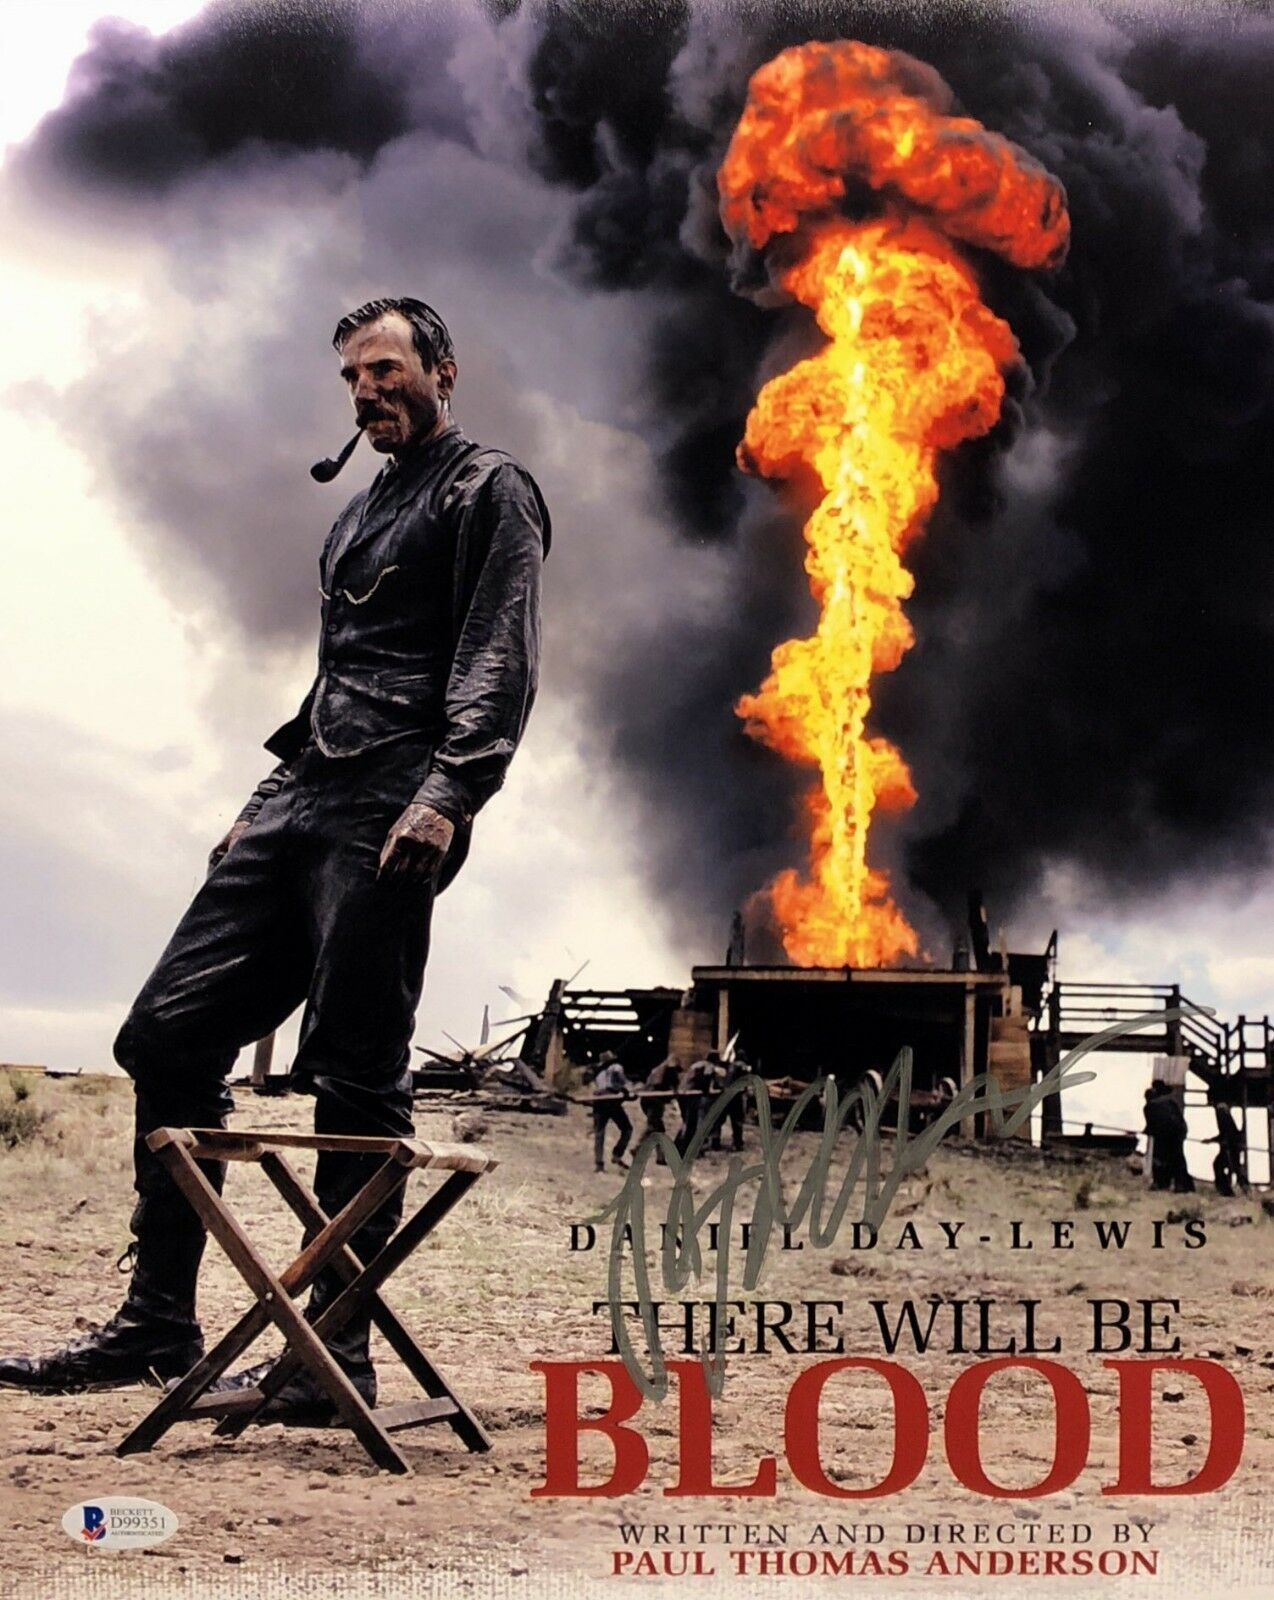 Paul Thomas Anderson Signed 'There Will Be Blood' 11x14 Photo Beckett BAS D99351